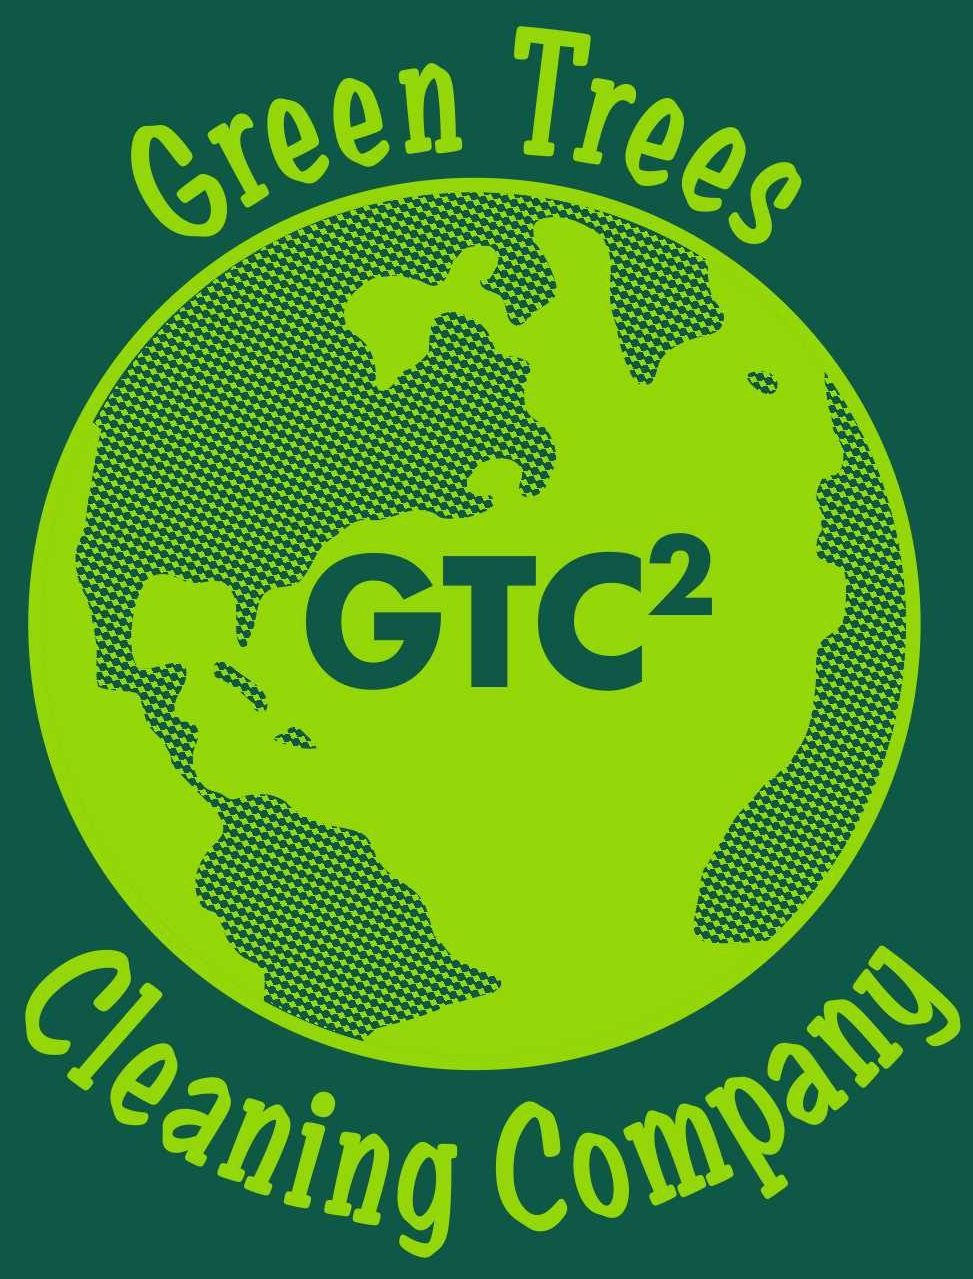 Green Trees Cleaning Co.